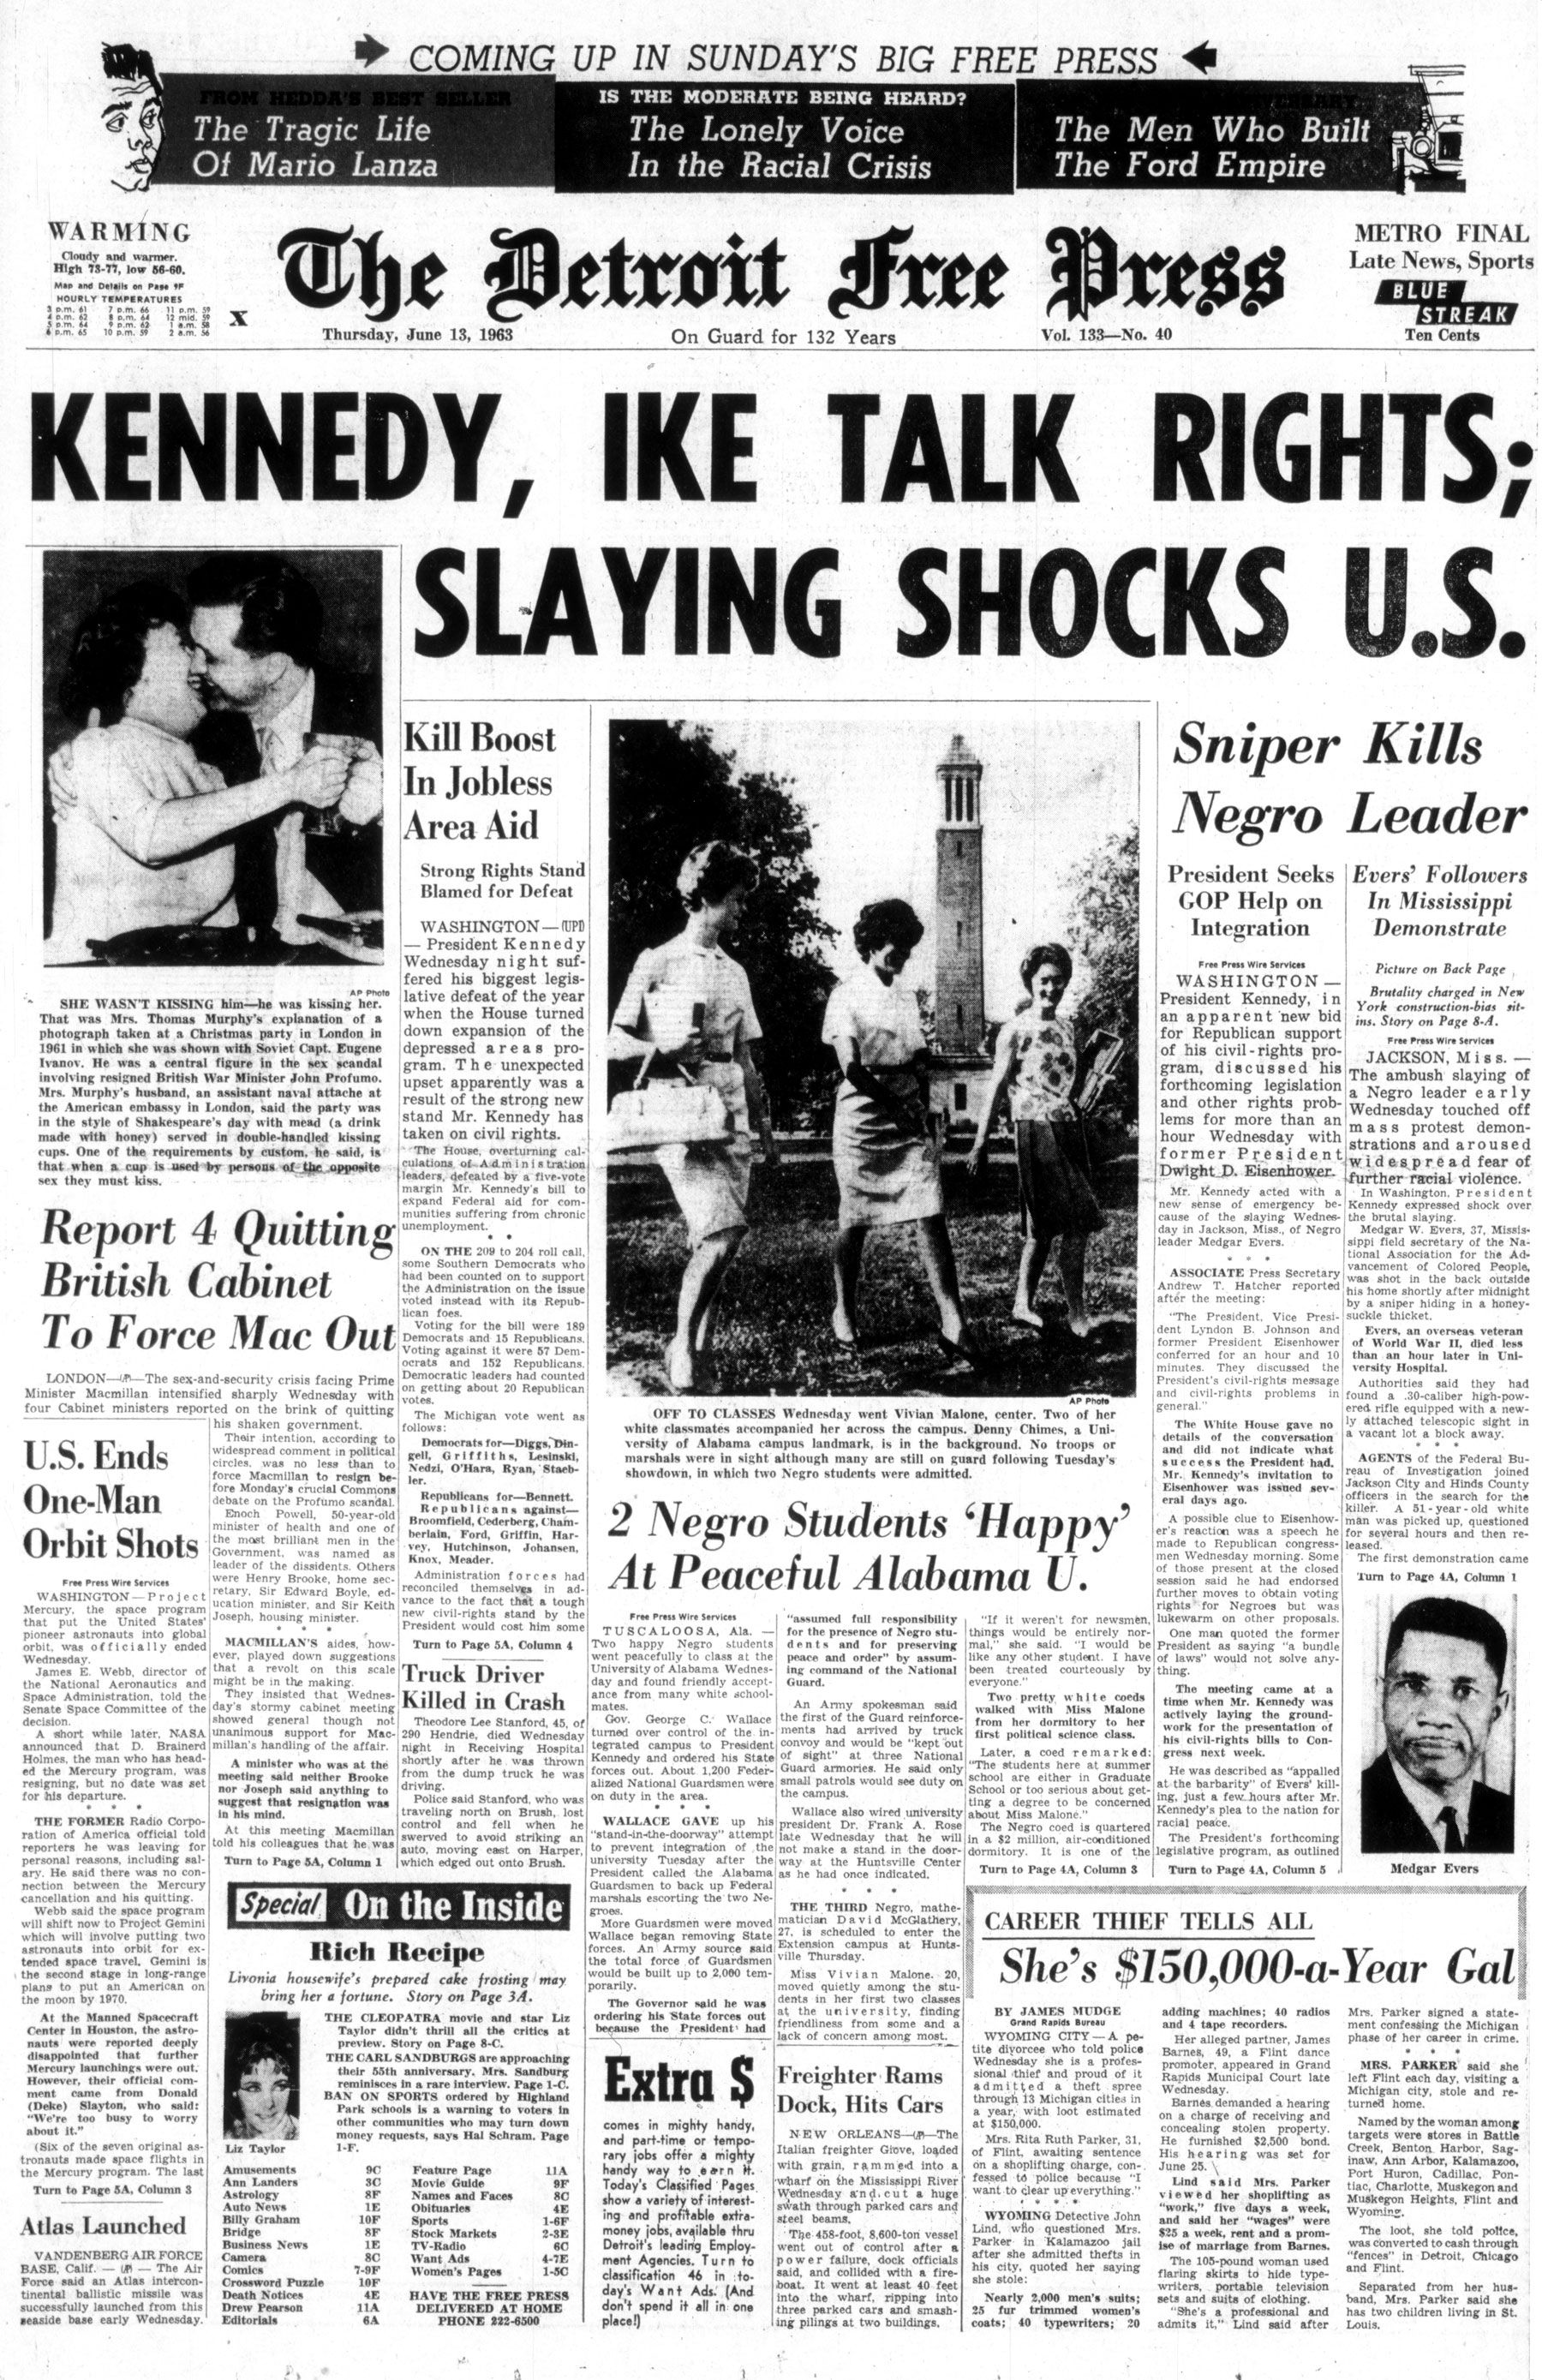 civil rights in the sixties essay Read this essay on internal divisions in the civil rights movement in the 1960s plan come browse our large digital warehouse of free sample essays get the knowledge you need in order to pass your classes and more.